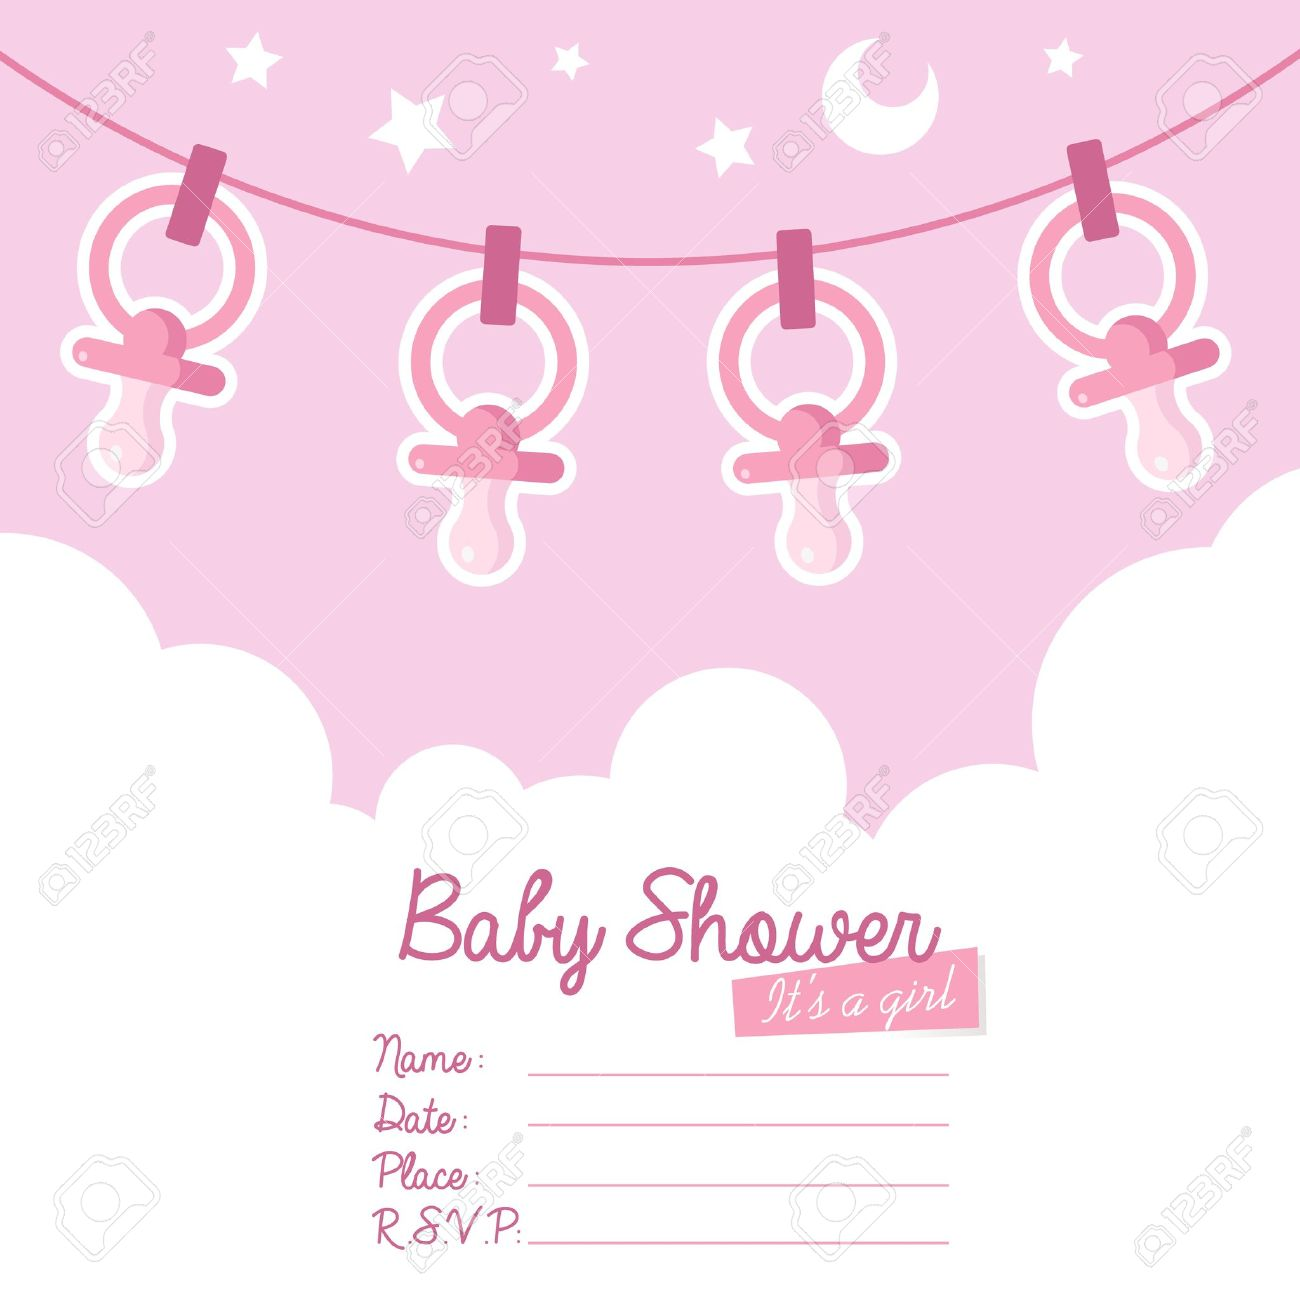 Cute Pink Baby Shower Invitation Card For Girls With Pacifiers ...